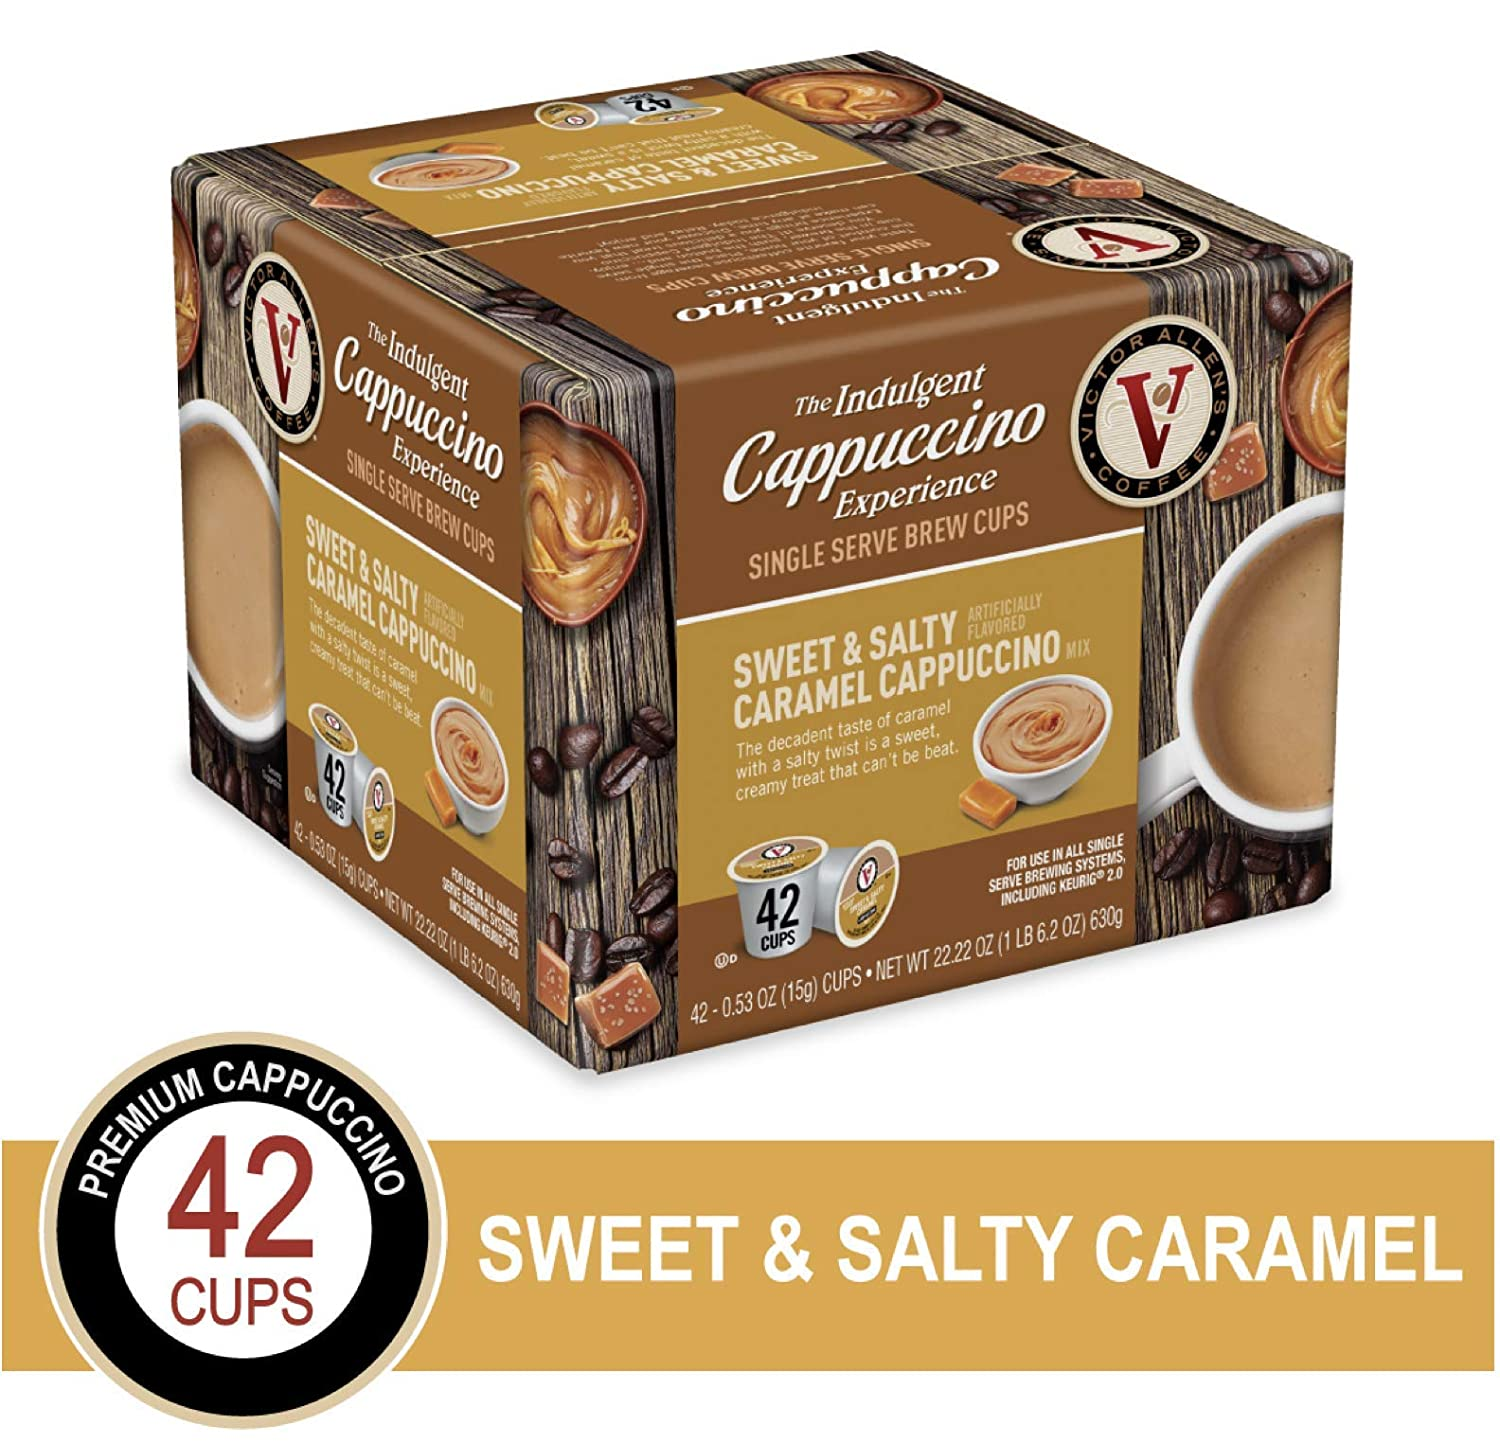 Sweet & Salty Cappuccino for K-Cup Keurig 2.0 Brewers, Victor Allen's Coffee Single Serve Coffee Pods, 42 Count